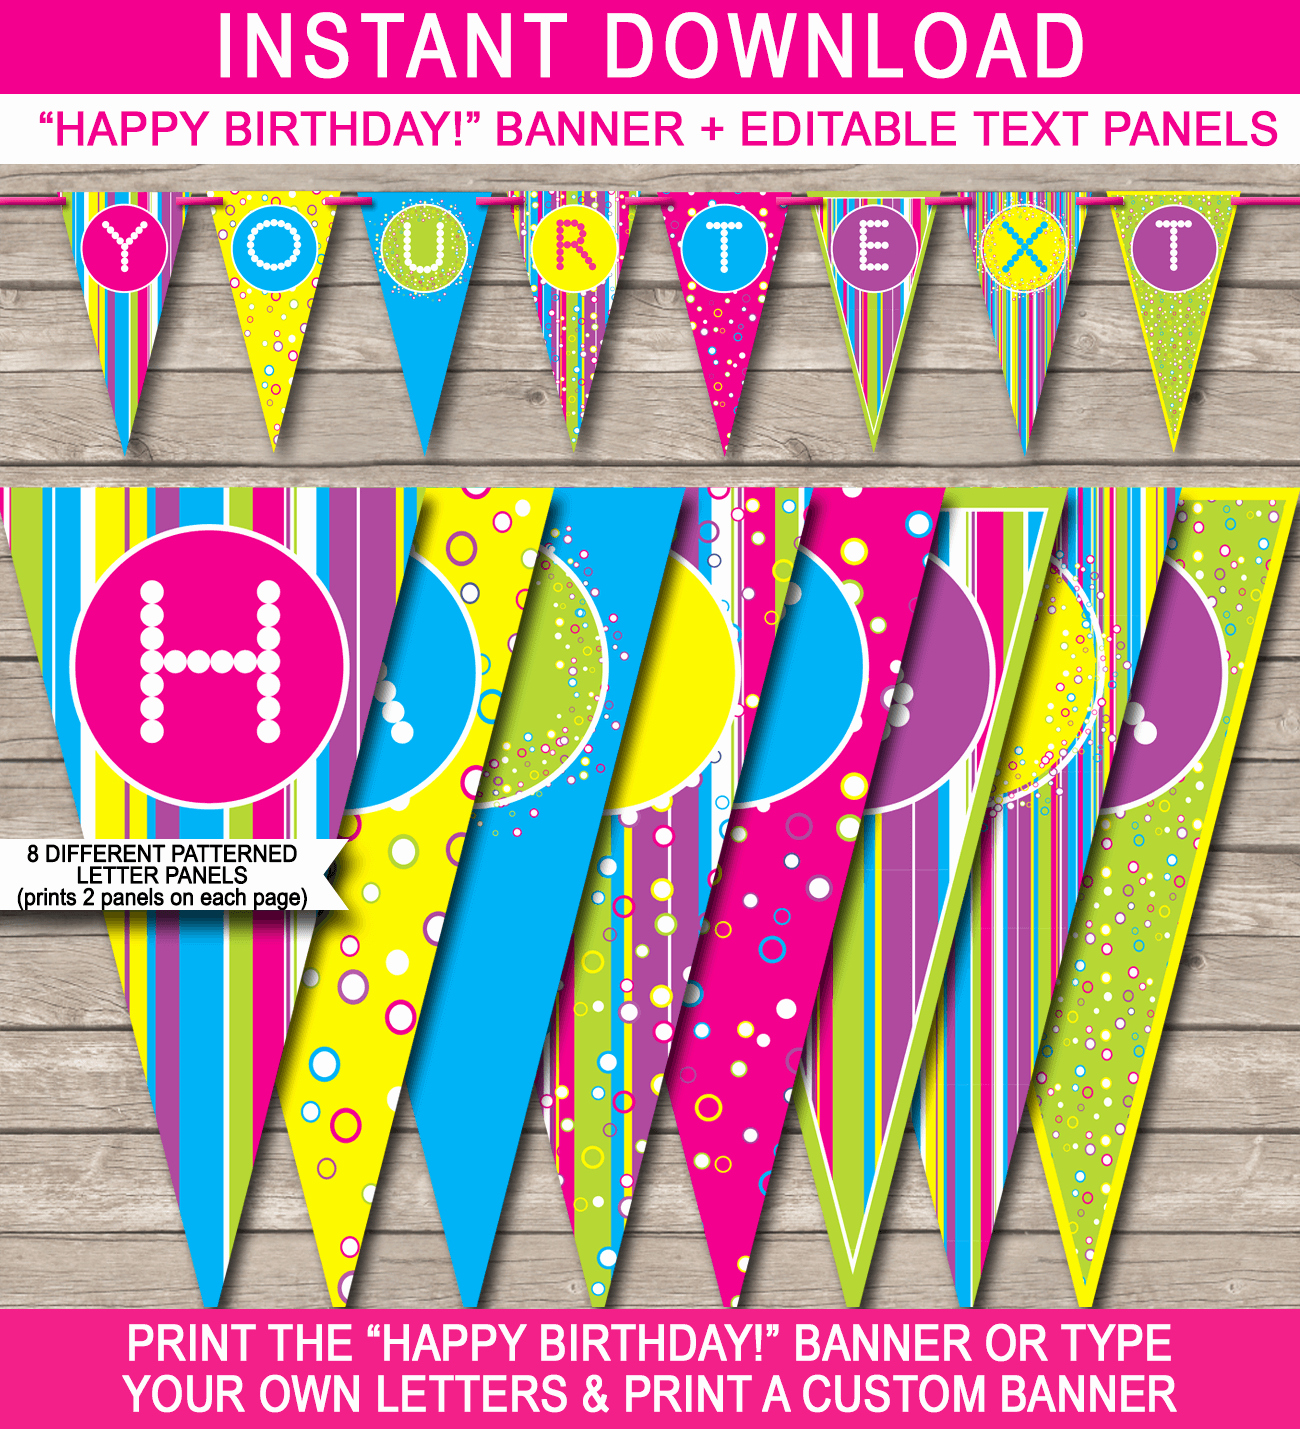 Happy Birthday Banner Template Printable Beautiful Colorful Banner Template